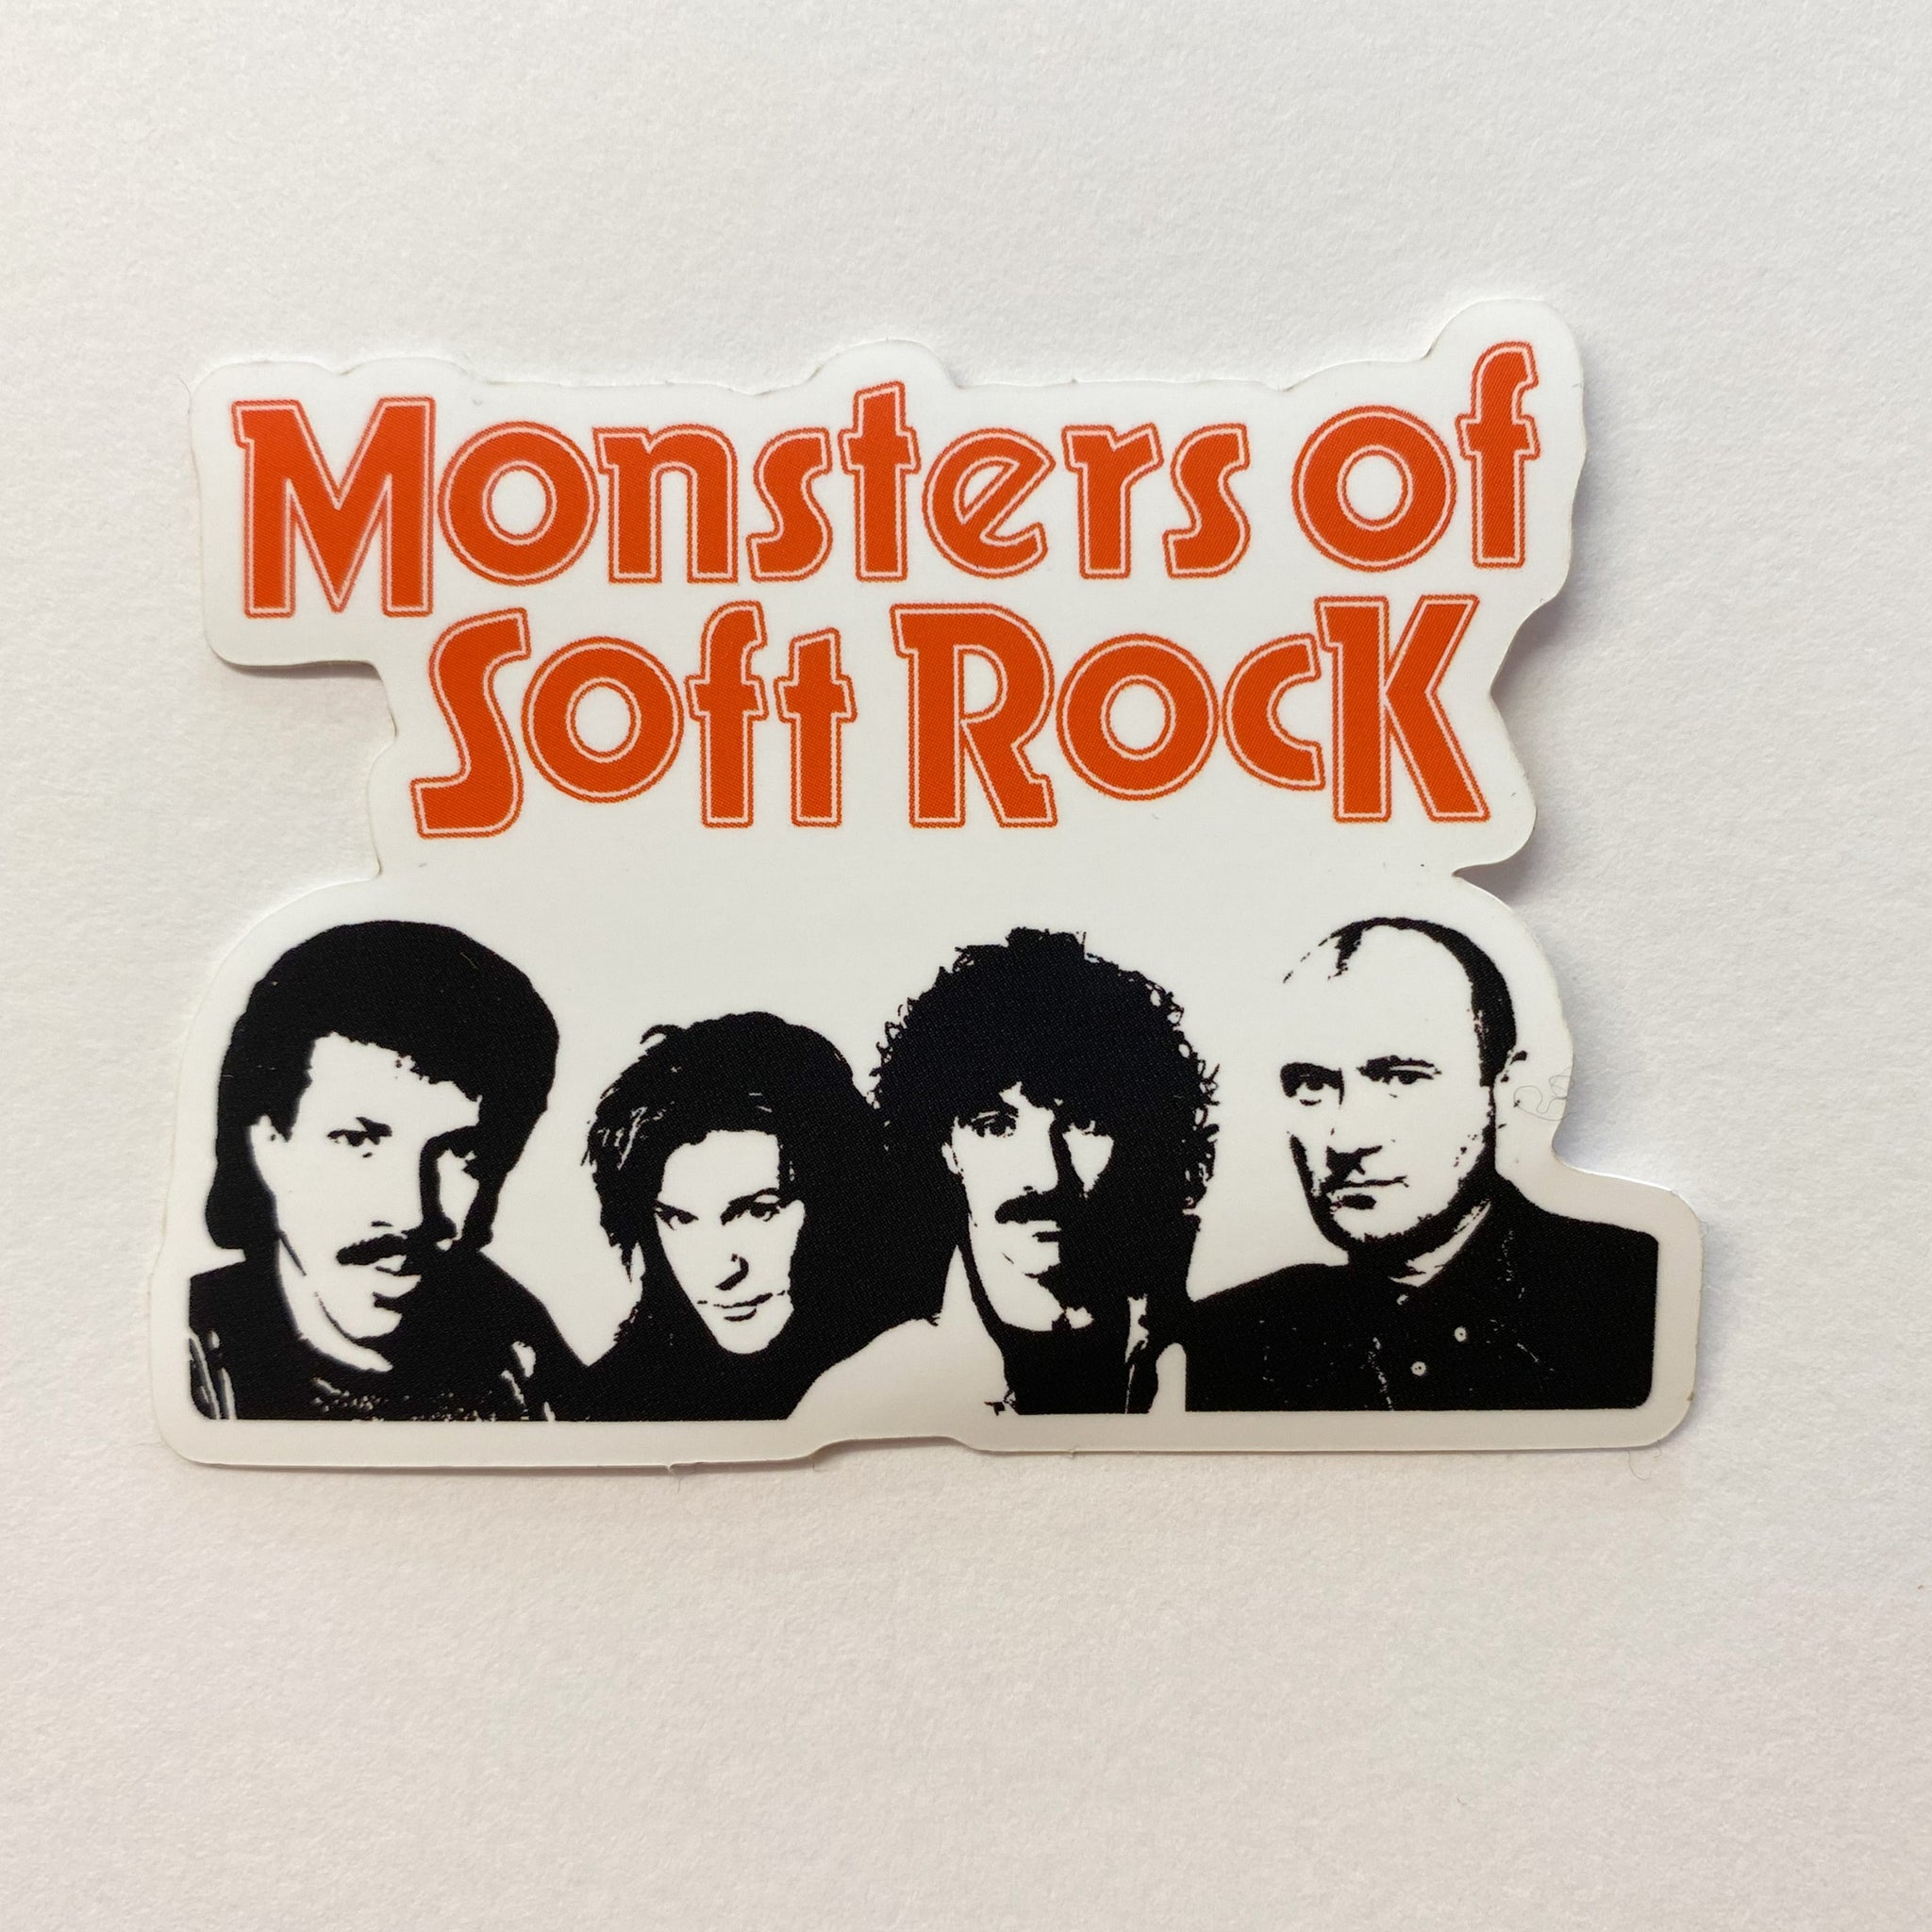 monsters of soft rock vinyl sticker